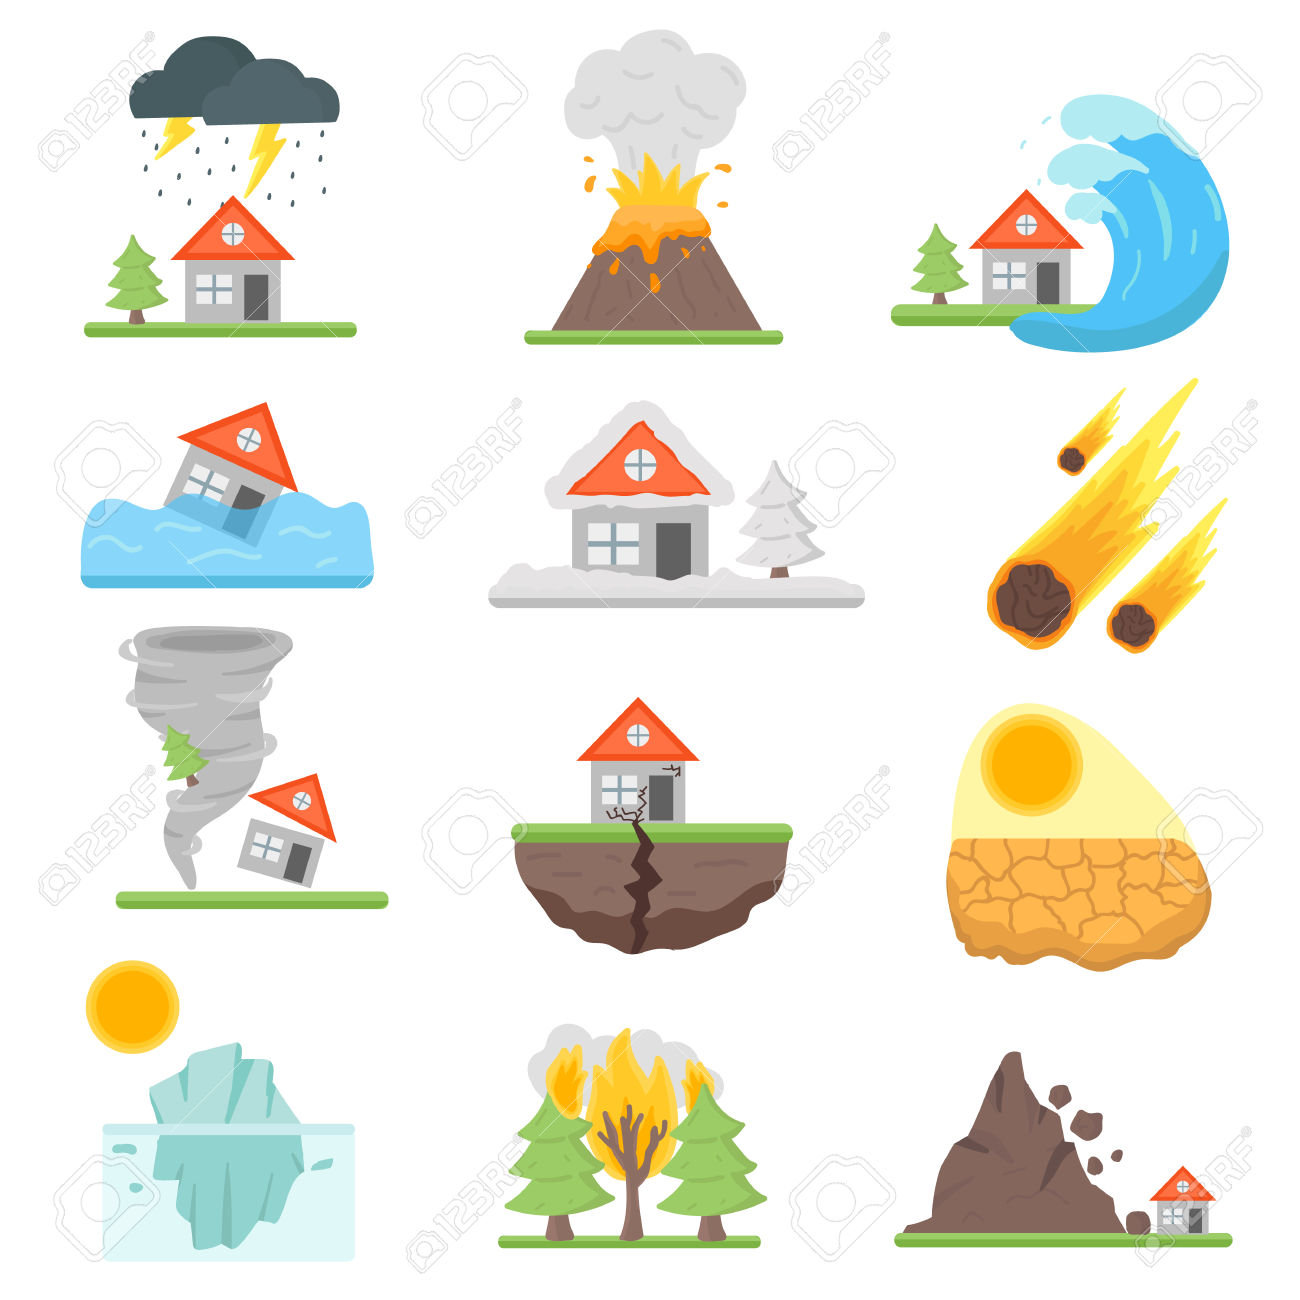 Home Insurance Business Set Vector Illustration With House Icons.